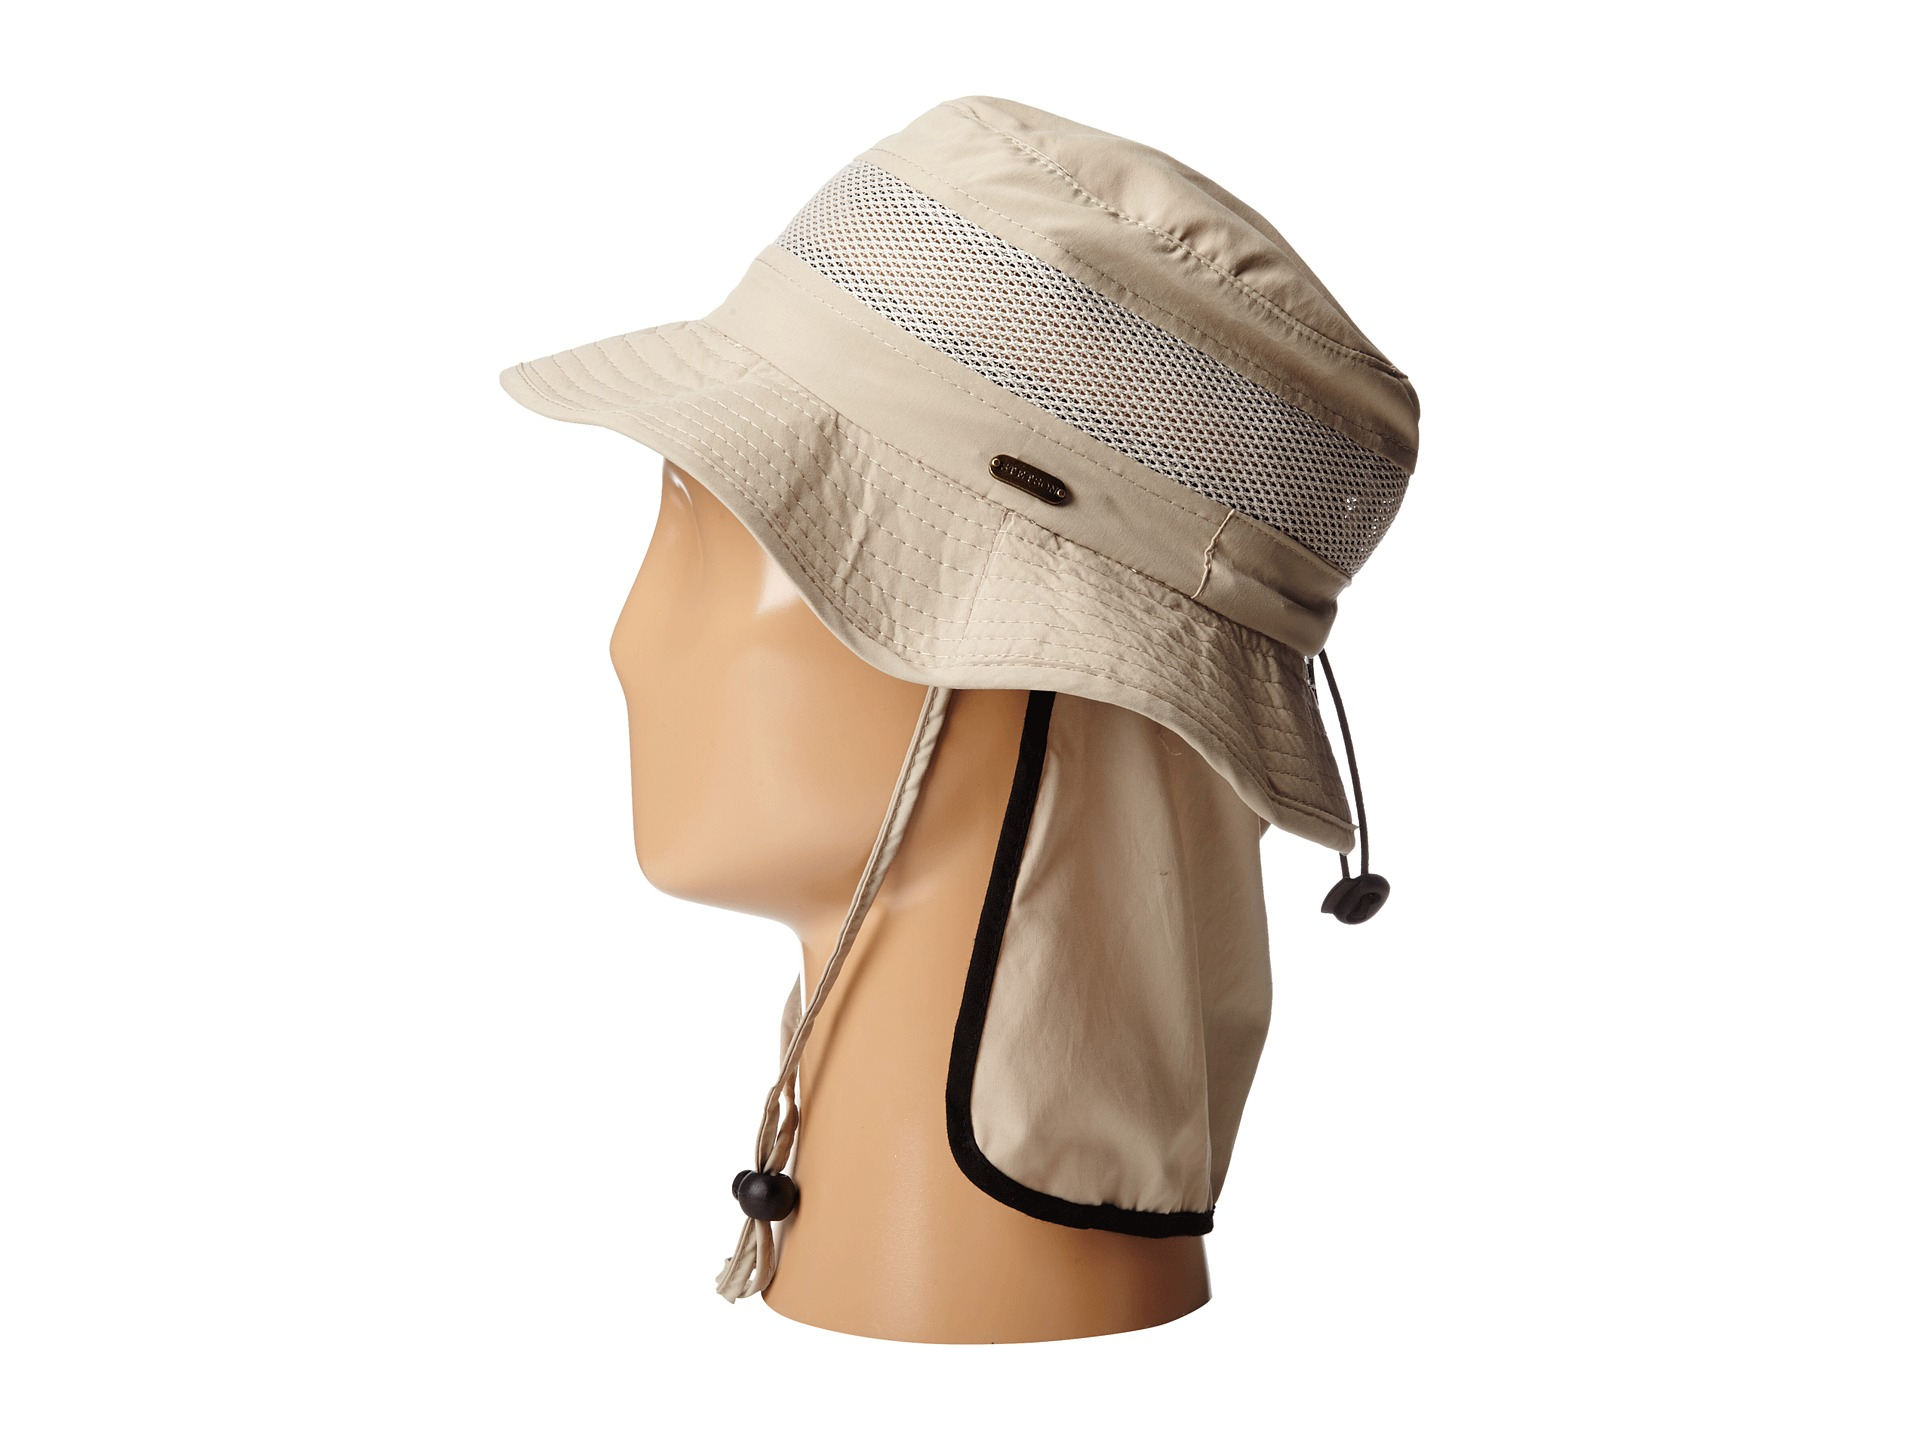 346e717460c63d Stetson Boonie With No Fly Zone Insect Shield Fabric And Neck Flap ...